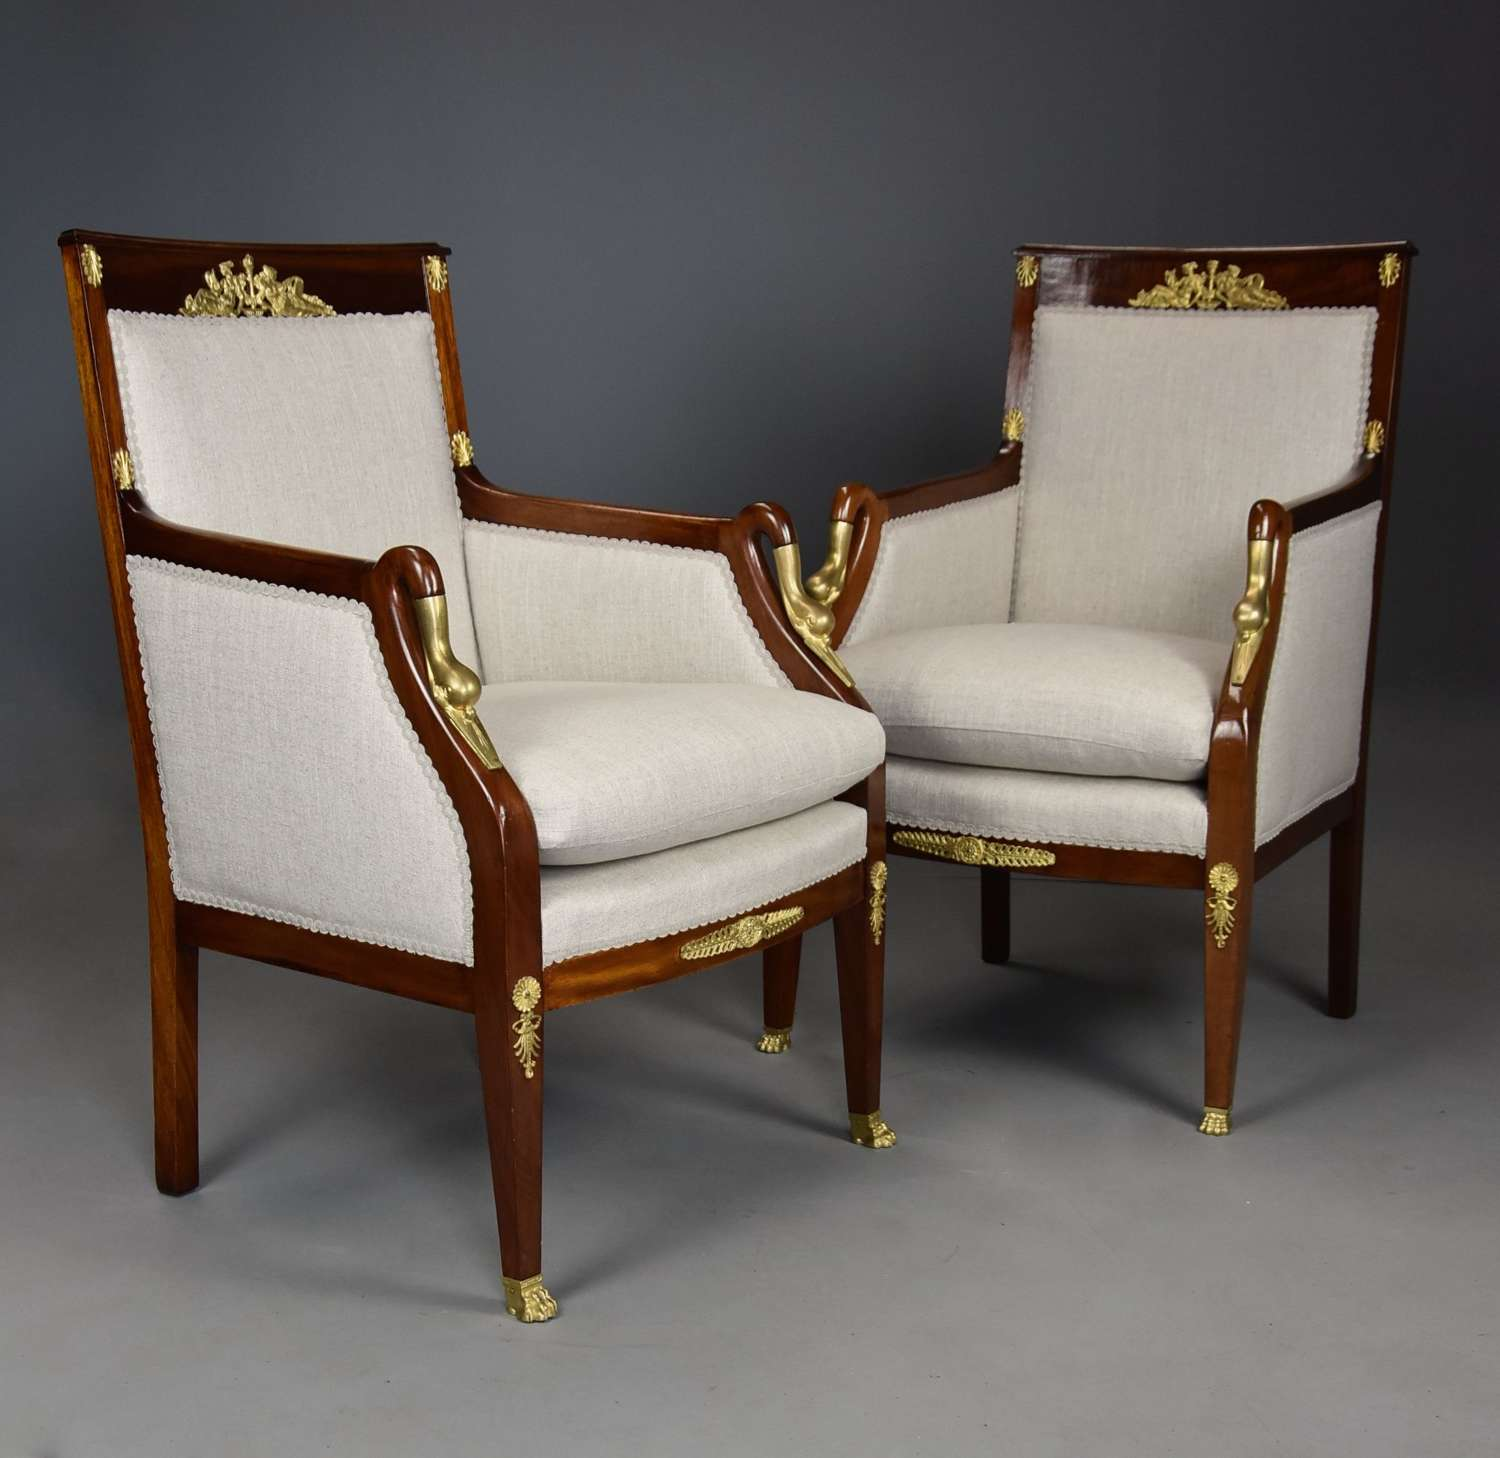 Pair of French Empire style mahogany upholstered armchairs